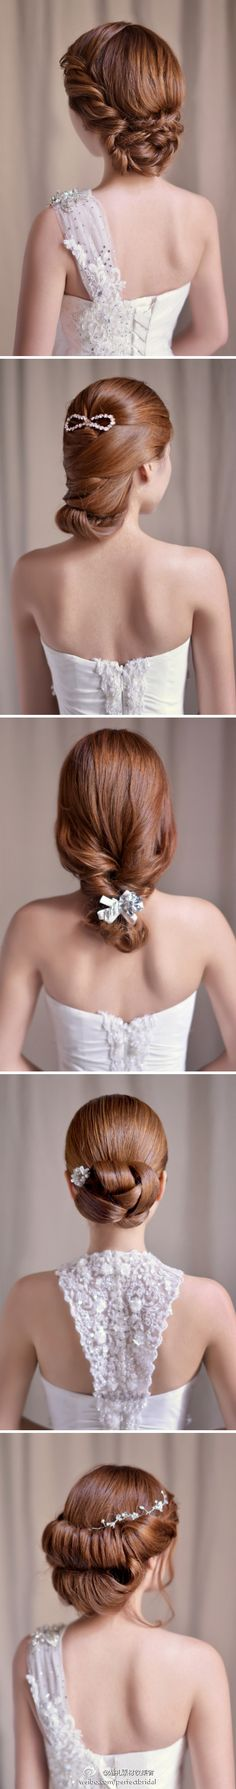 hair ideas for #wedding #hair #totalweddingshow